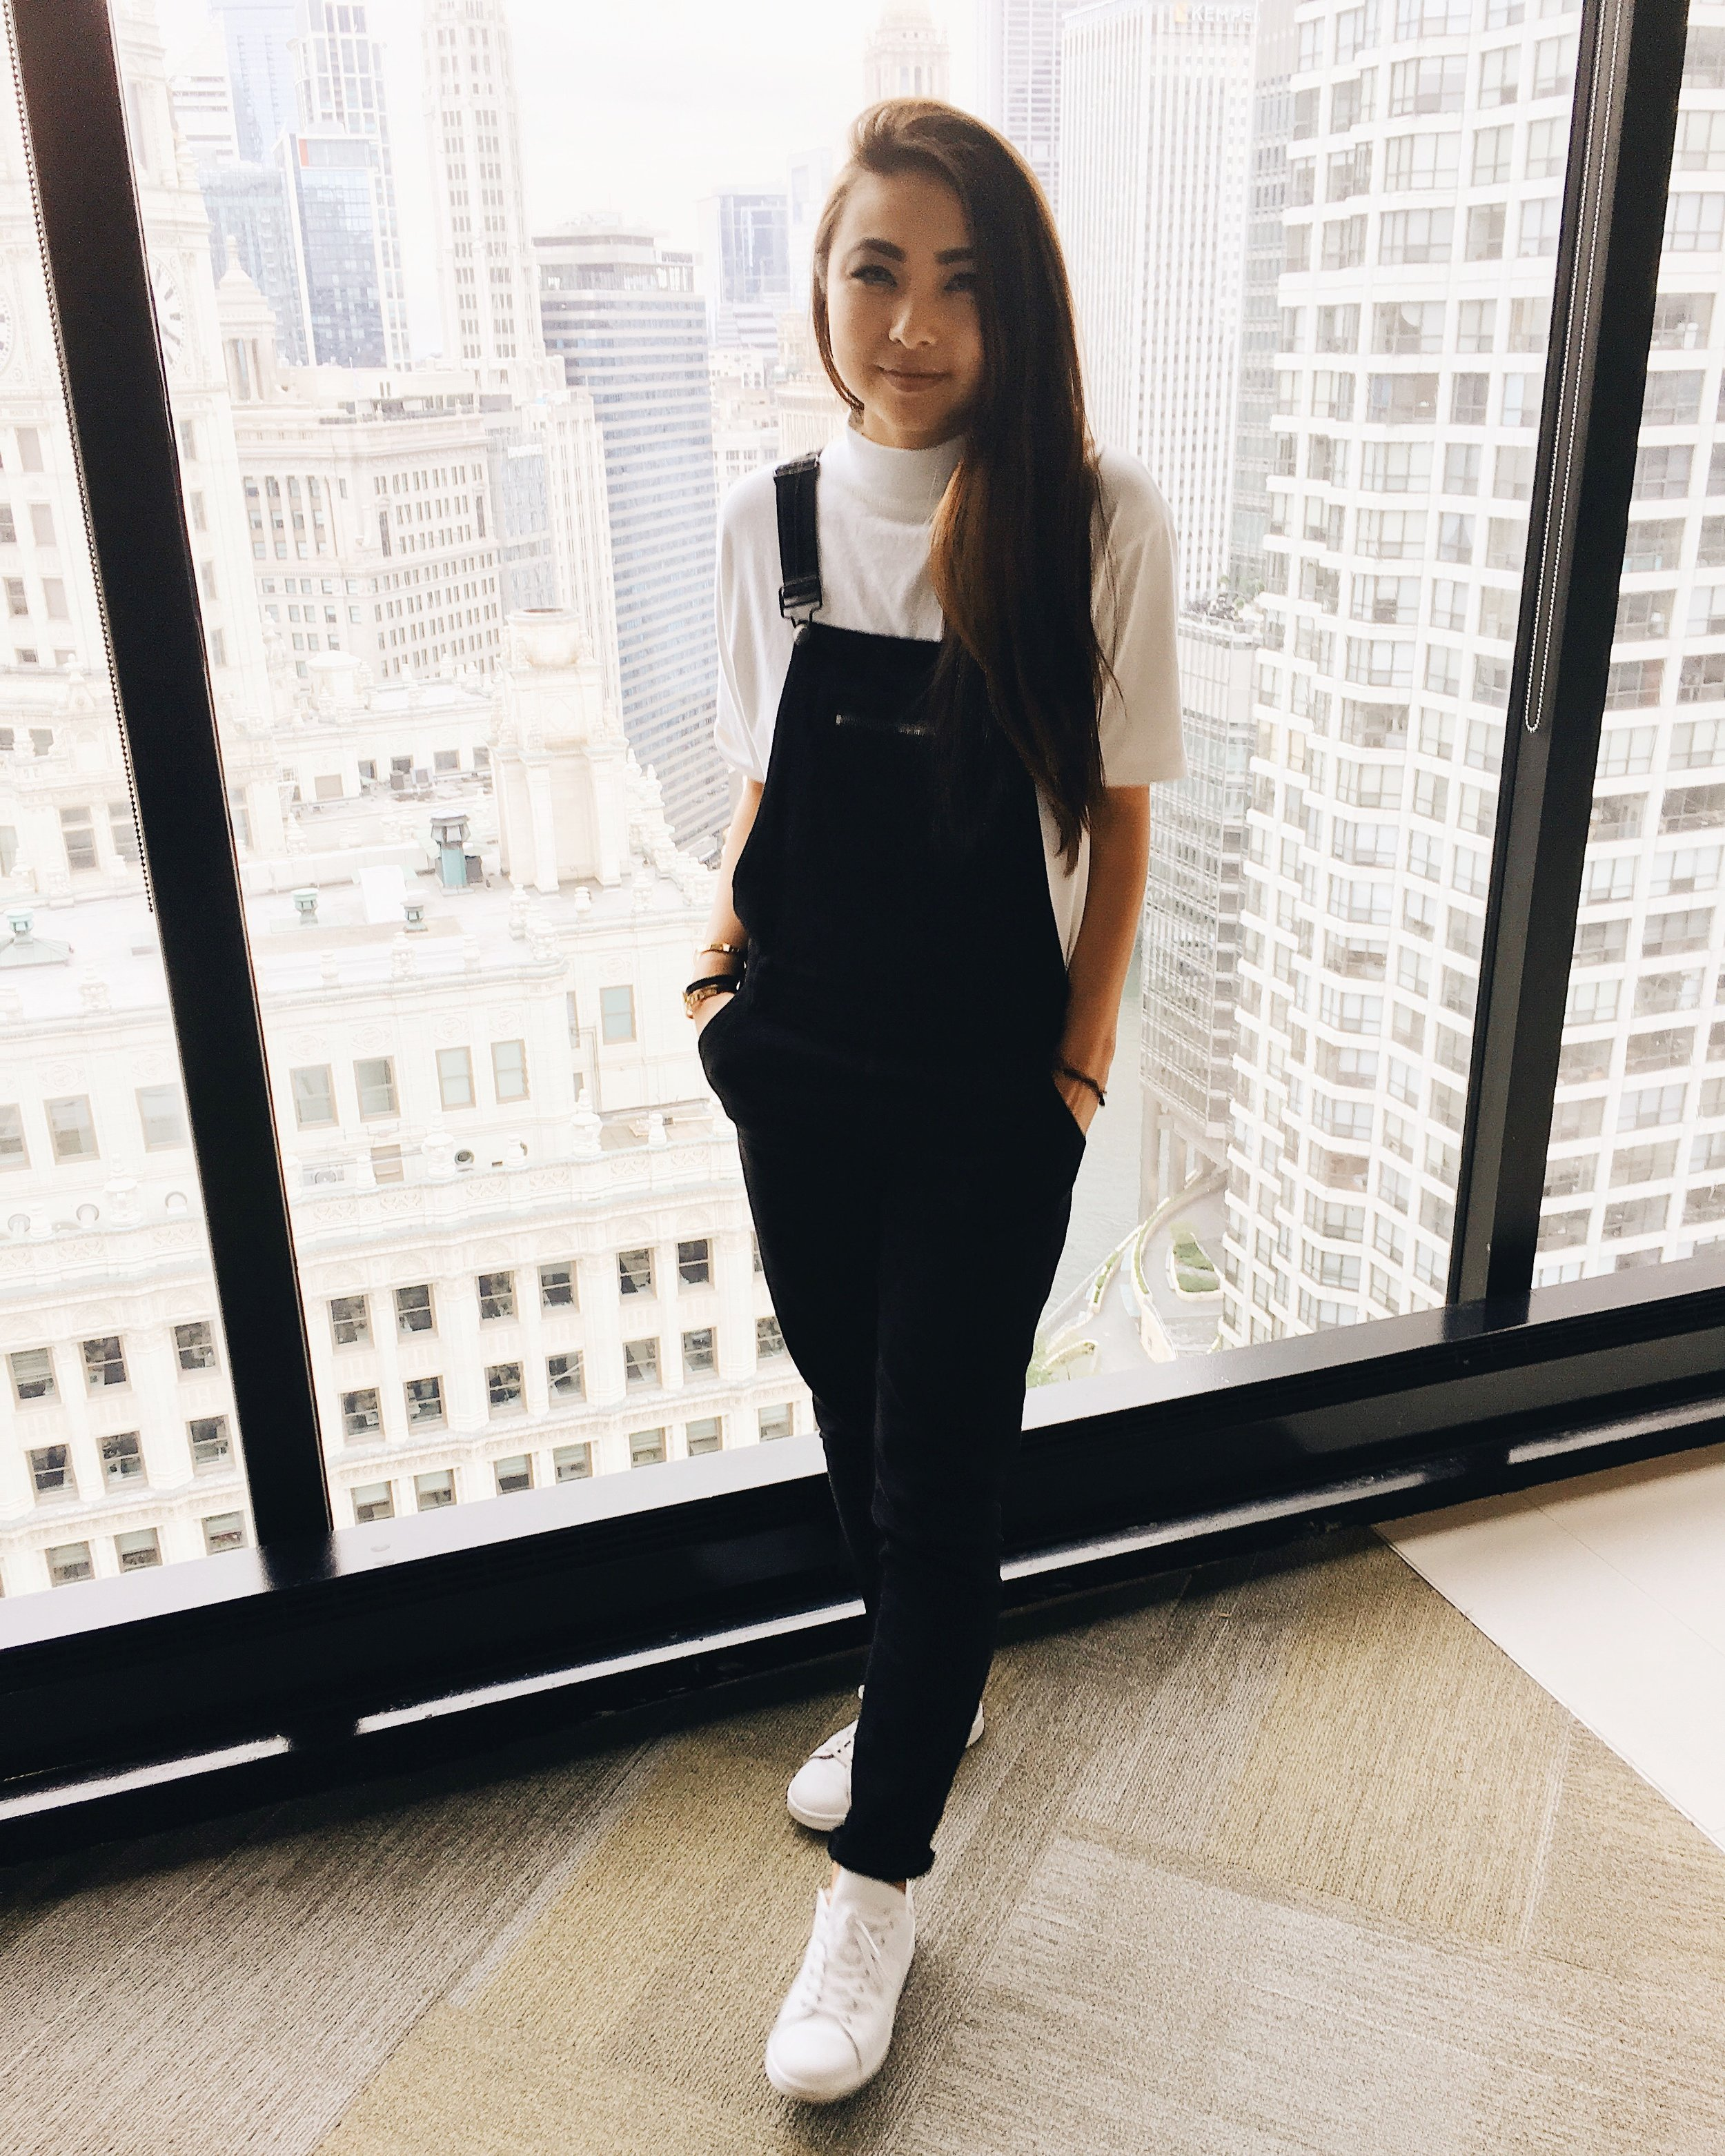 Ginger wears Jack Turtleneck top,  Brandy Melville ; overalls,  Second Skin Overalls ; sneakers,  Adidas .